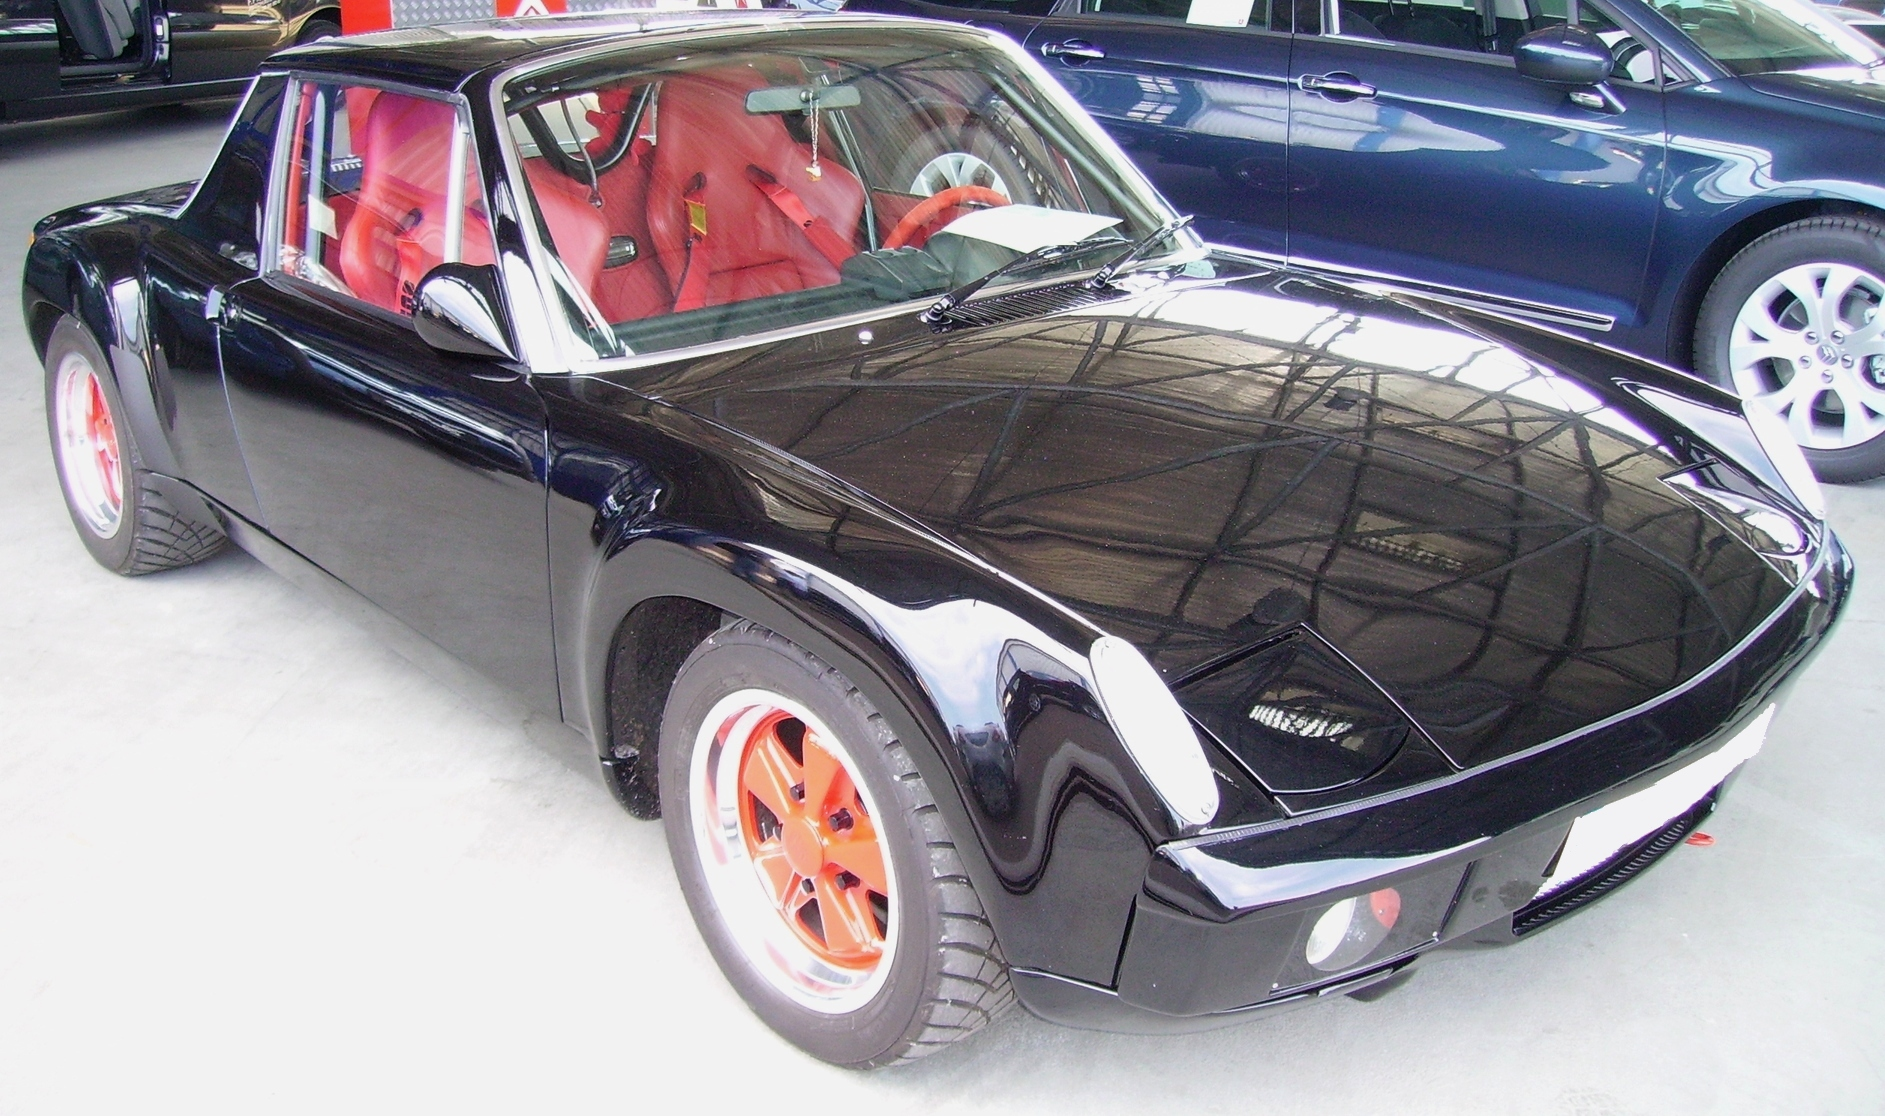 File:Porsche 914-6.jpg - Wikimedia Commons